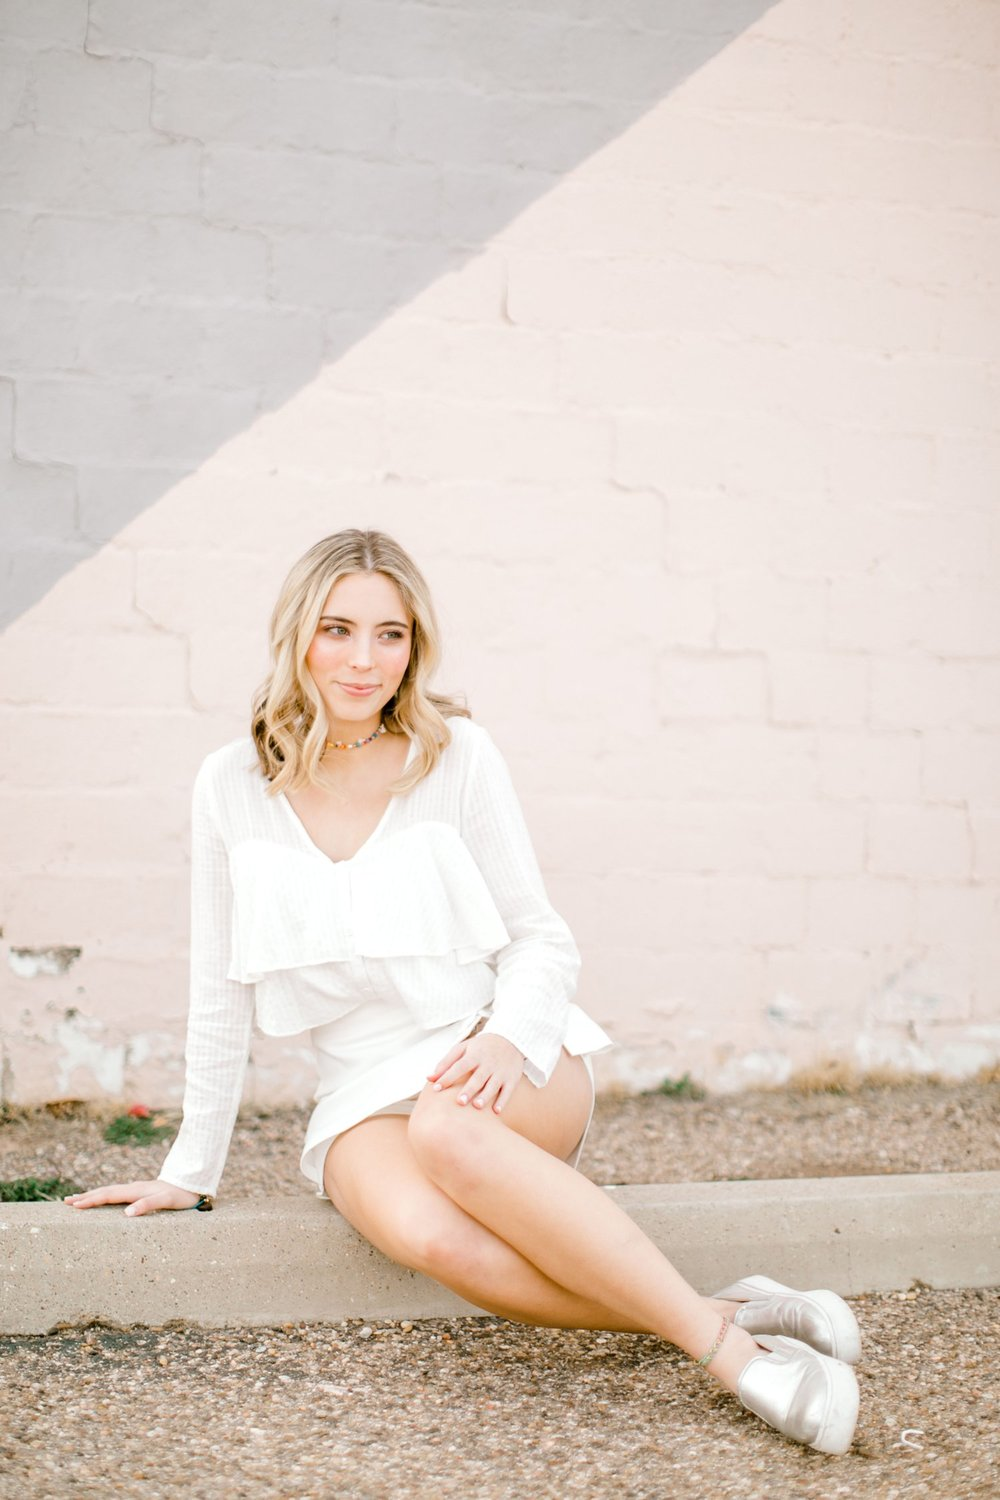 abby-macha-all-saints-high-school-lubbock-senior-photographer_0009.jpg